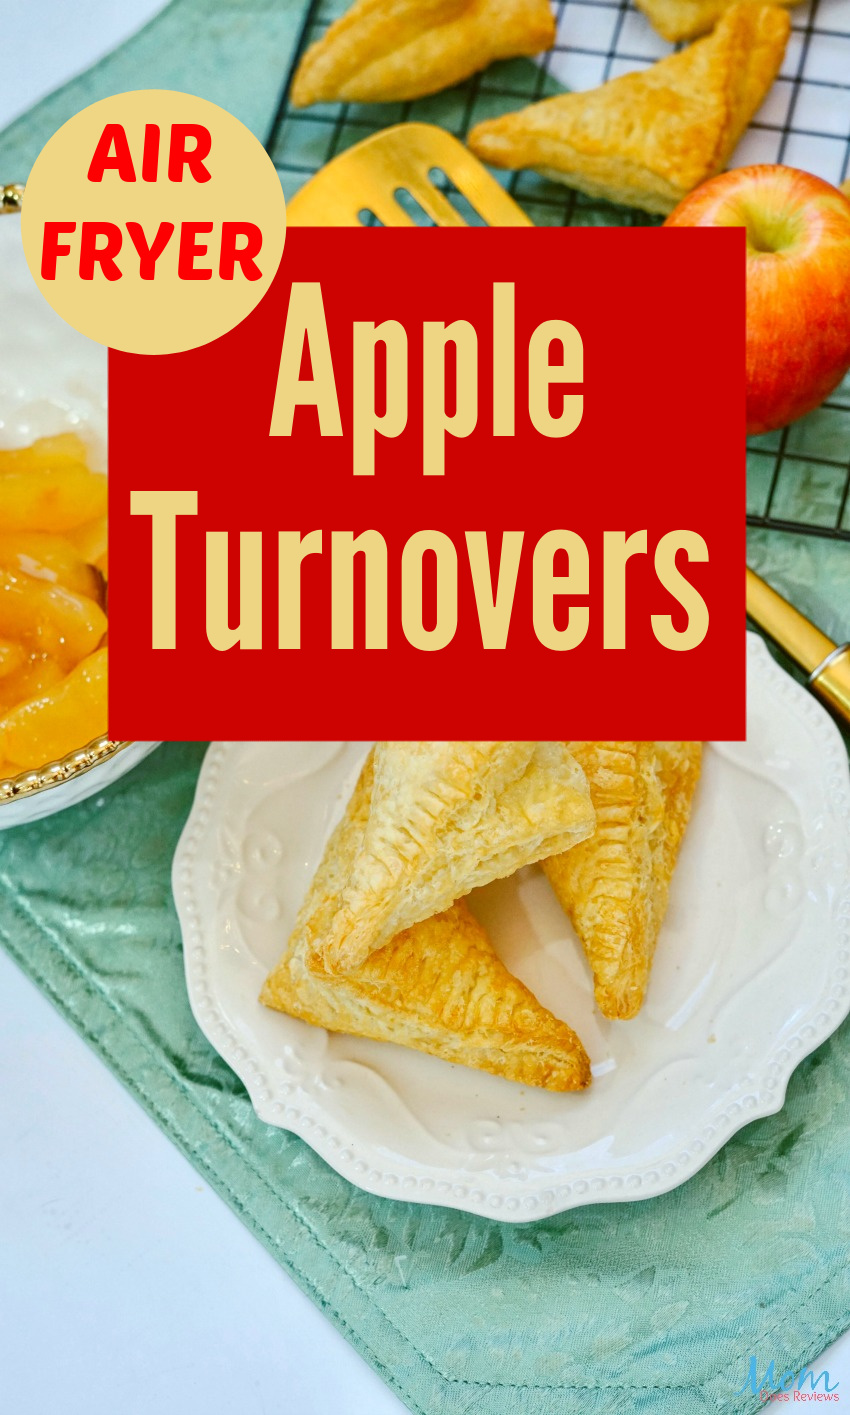 Air Fryer Apple Turnovers Recipe #desserts #sweets #applerecipes